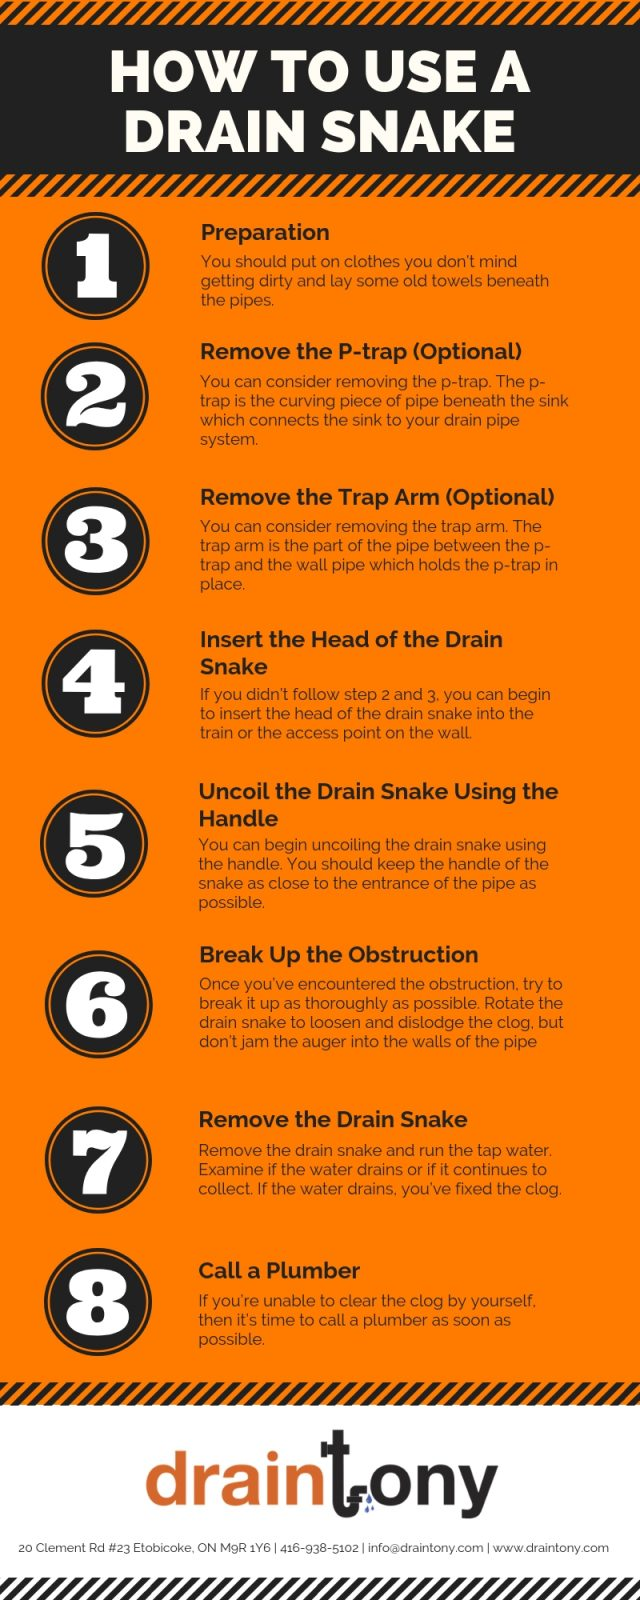 How to Use a Drain Snake